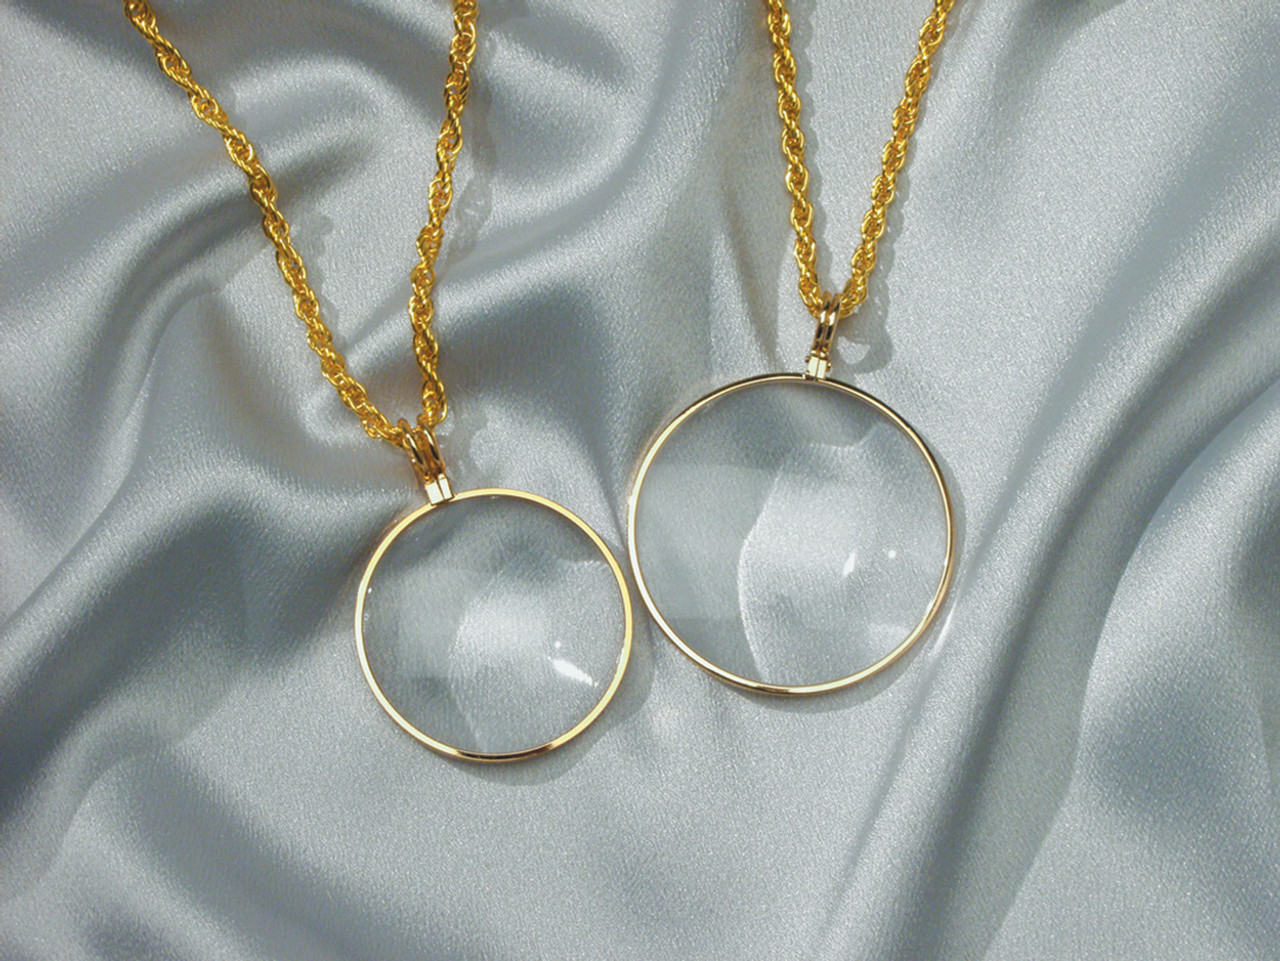 6X Pendant Magnifier with Chain